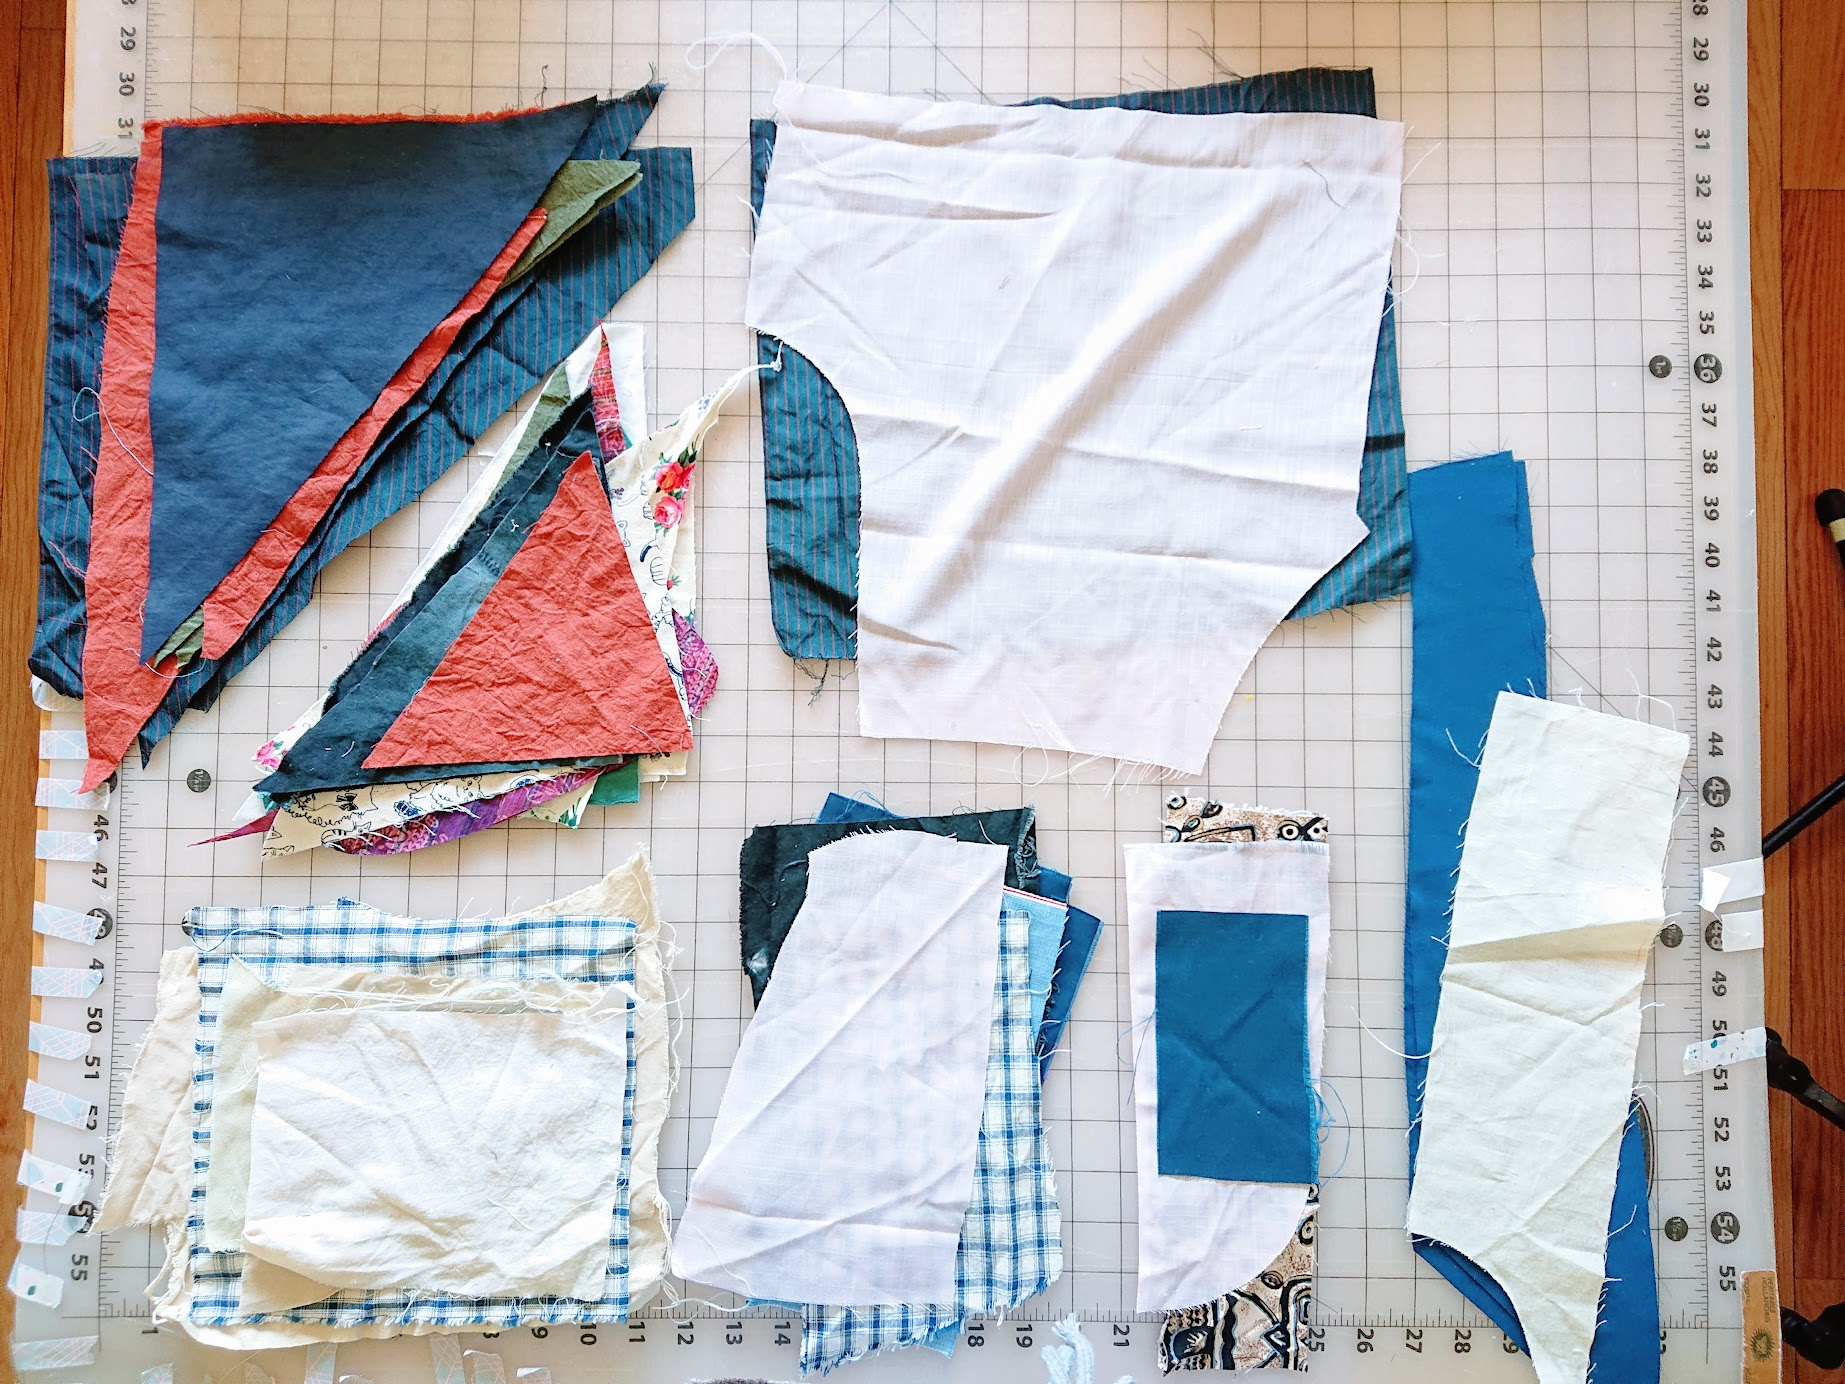 Gathered cloths - Climate Creative 2021 project | Fafafoom Studio